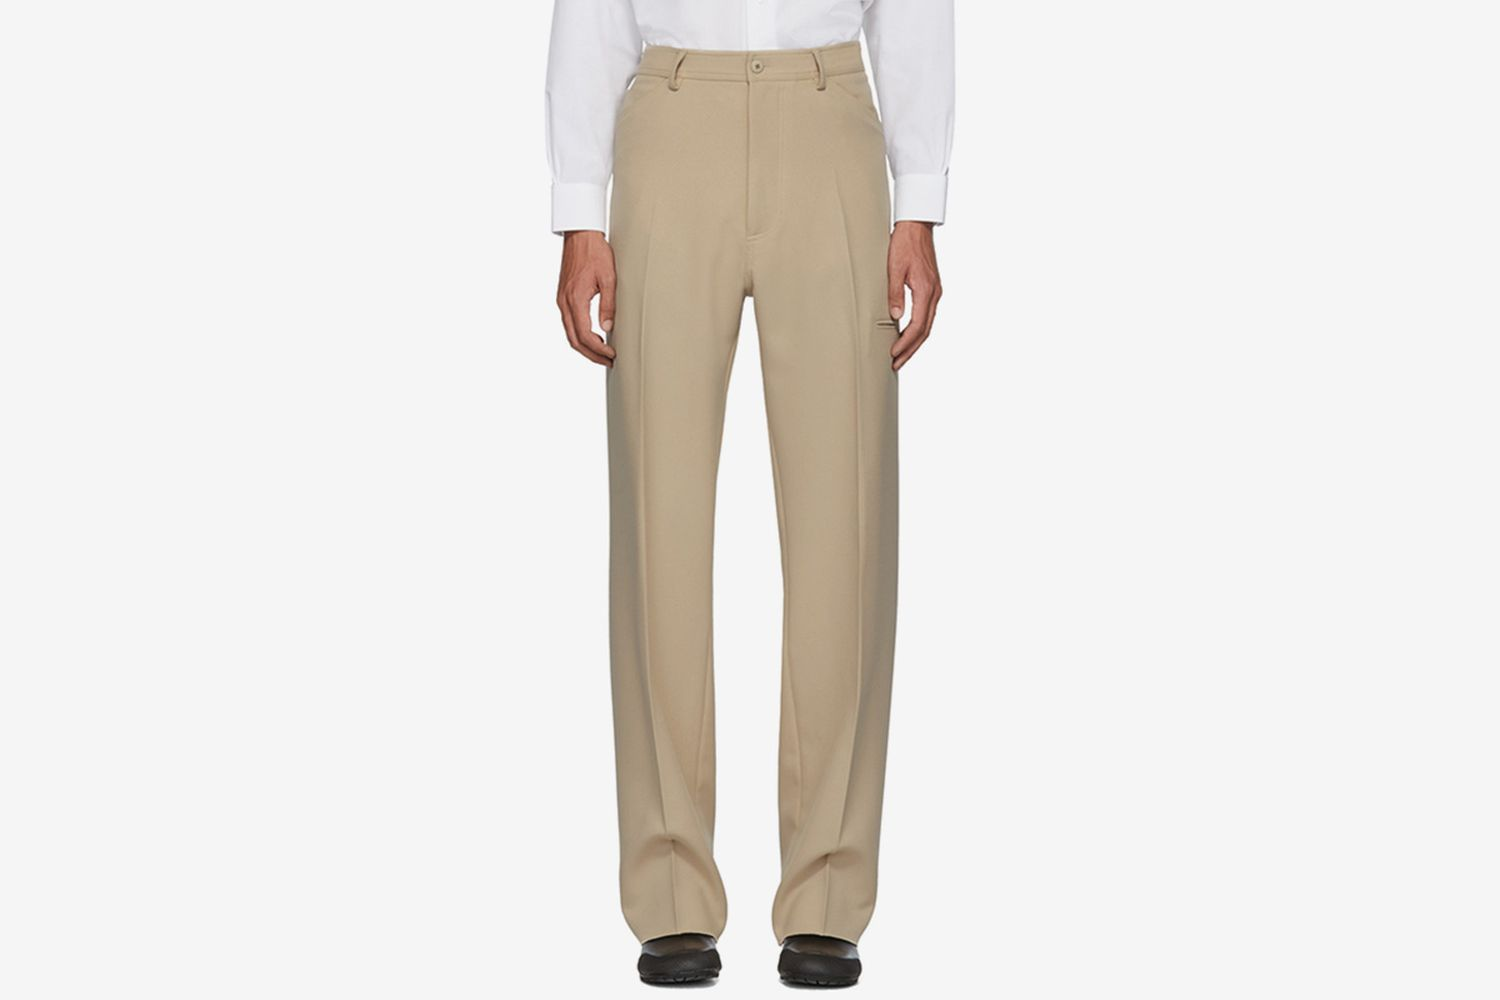 Beige High-Rise Five-Pocket Trousers